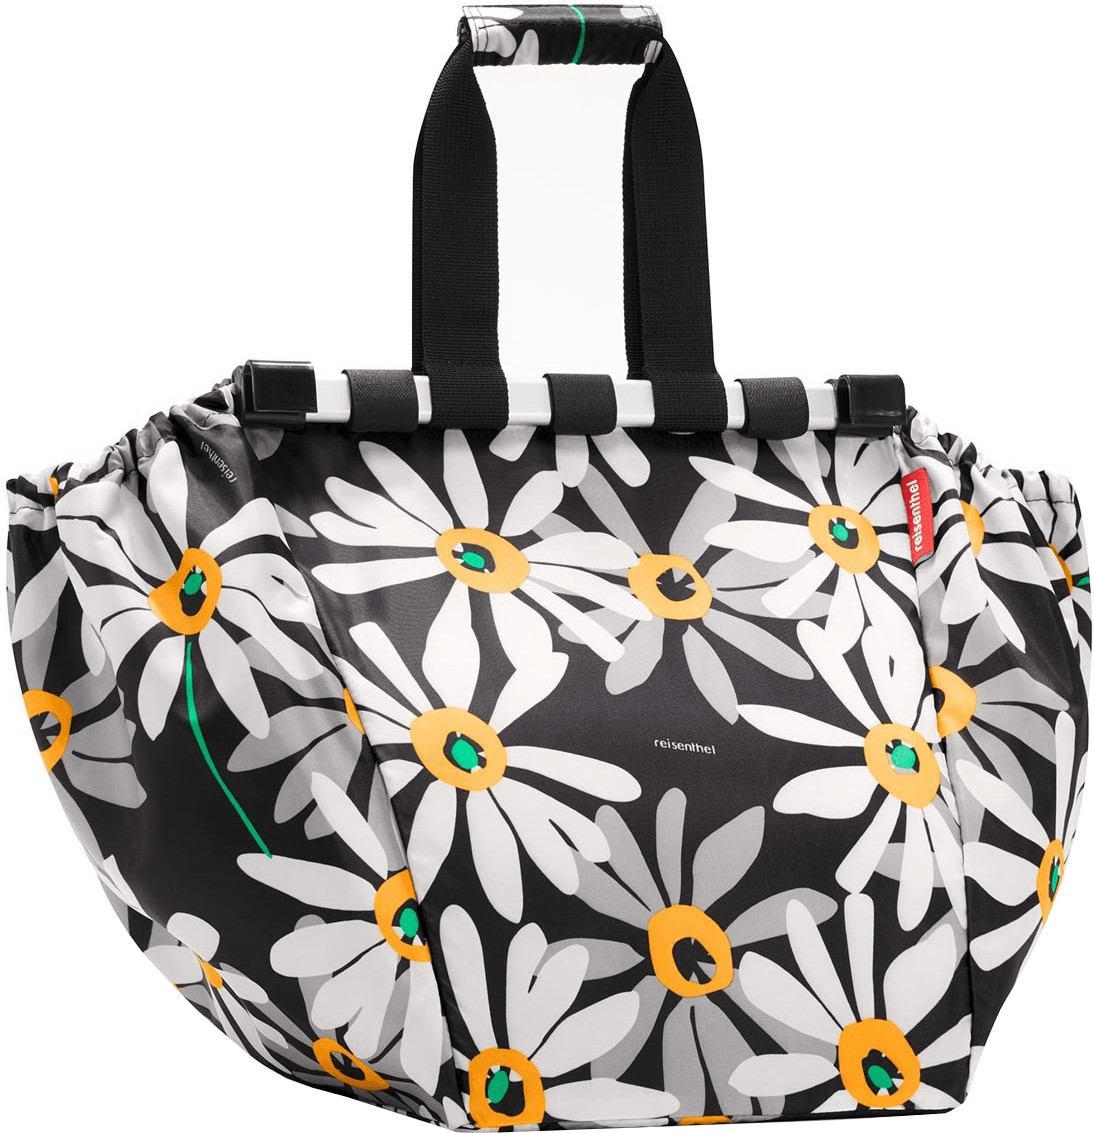 Reisenthel Easyshoppingbag margarite